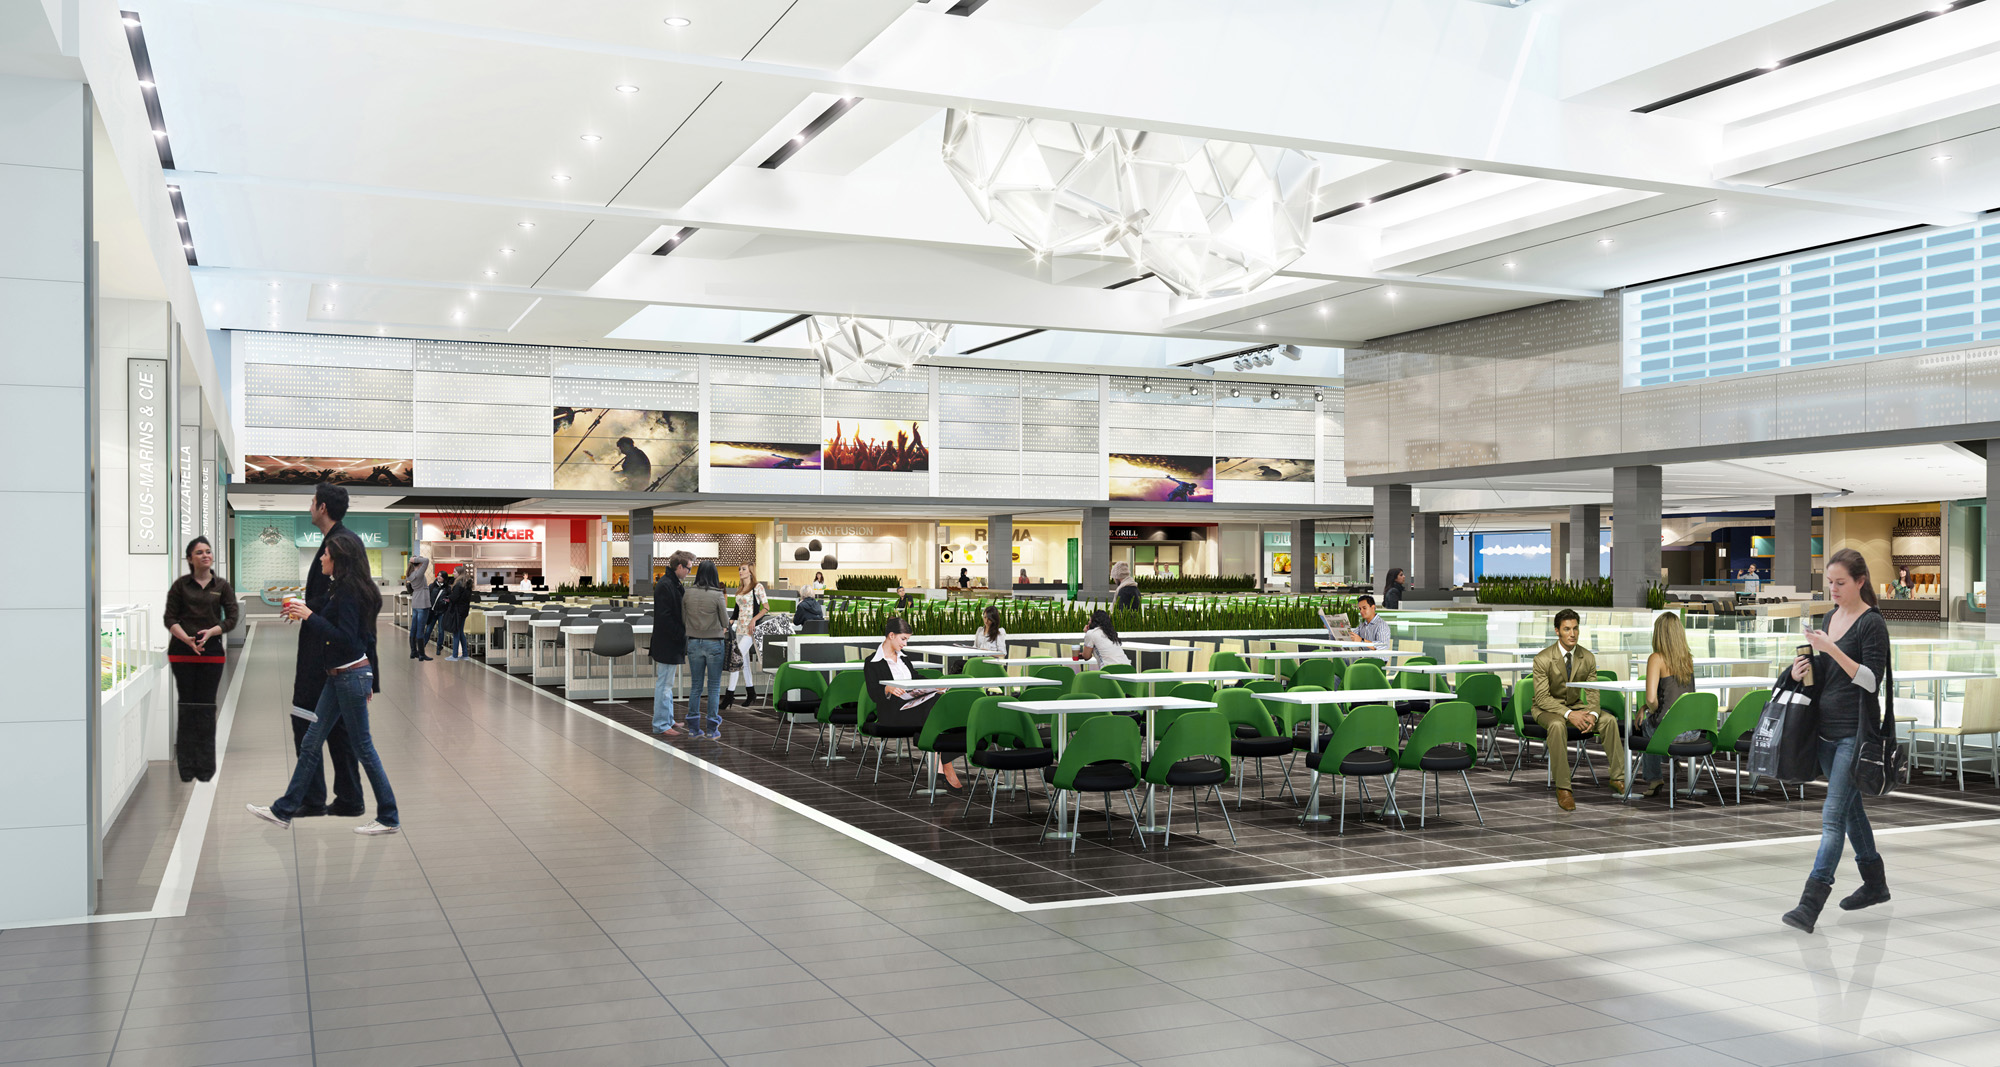 shoppint mall rendering_Foodcourt.jpg